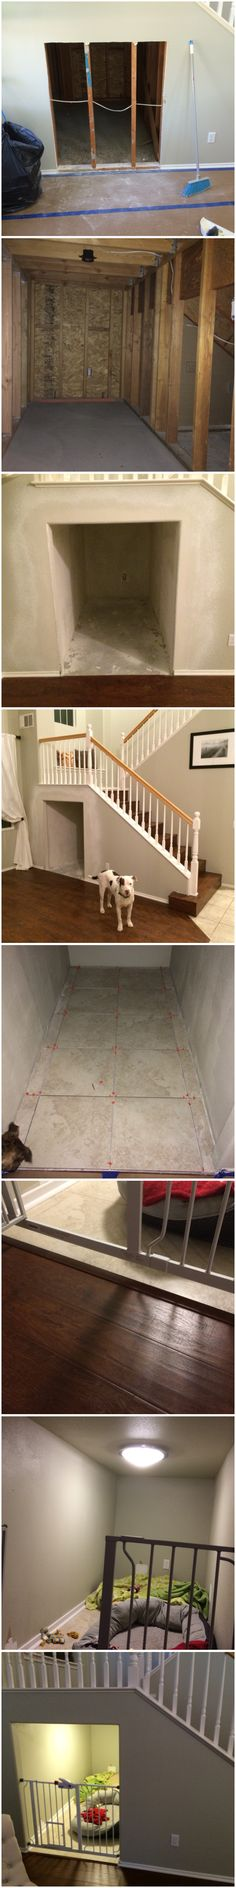 Dog room under stairs. There is so much wasted space under stairs and just a perfect spot for a dog room.. They love their spot!